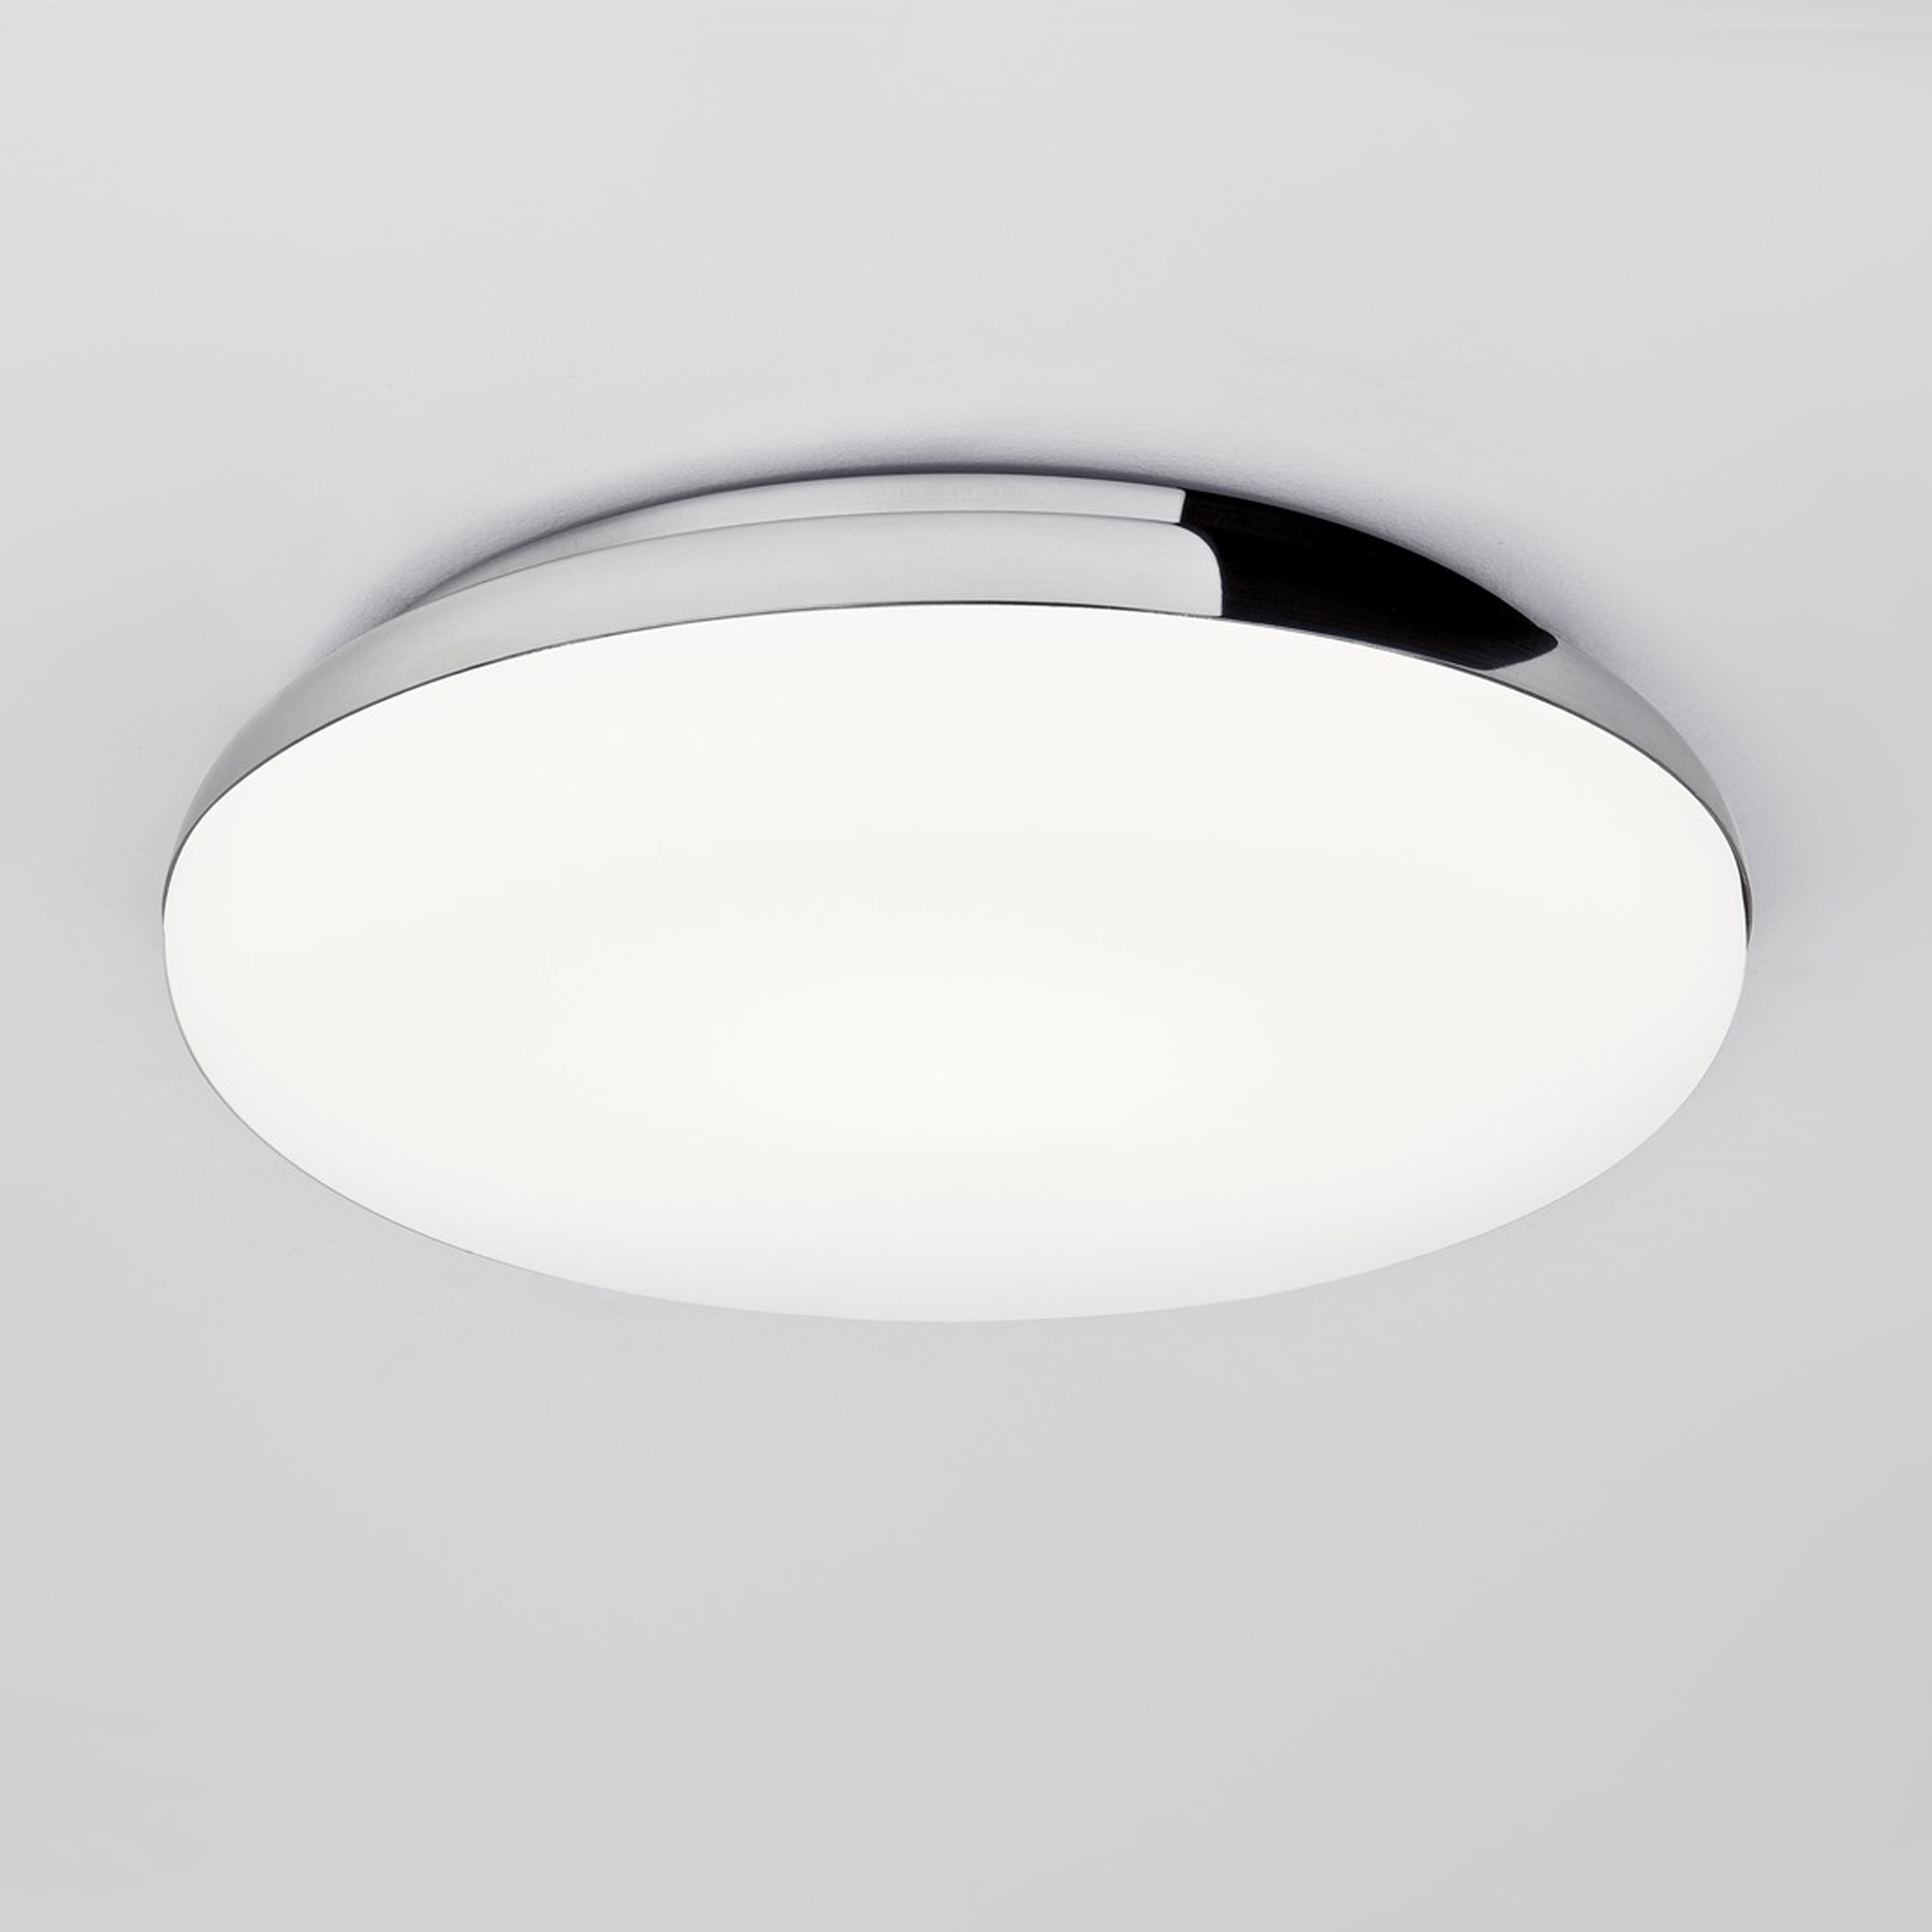 Astro Altea 300 Ceiling Light Chrome B